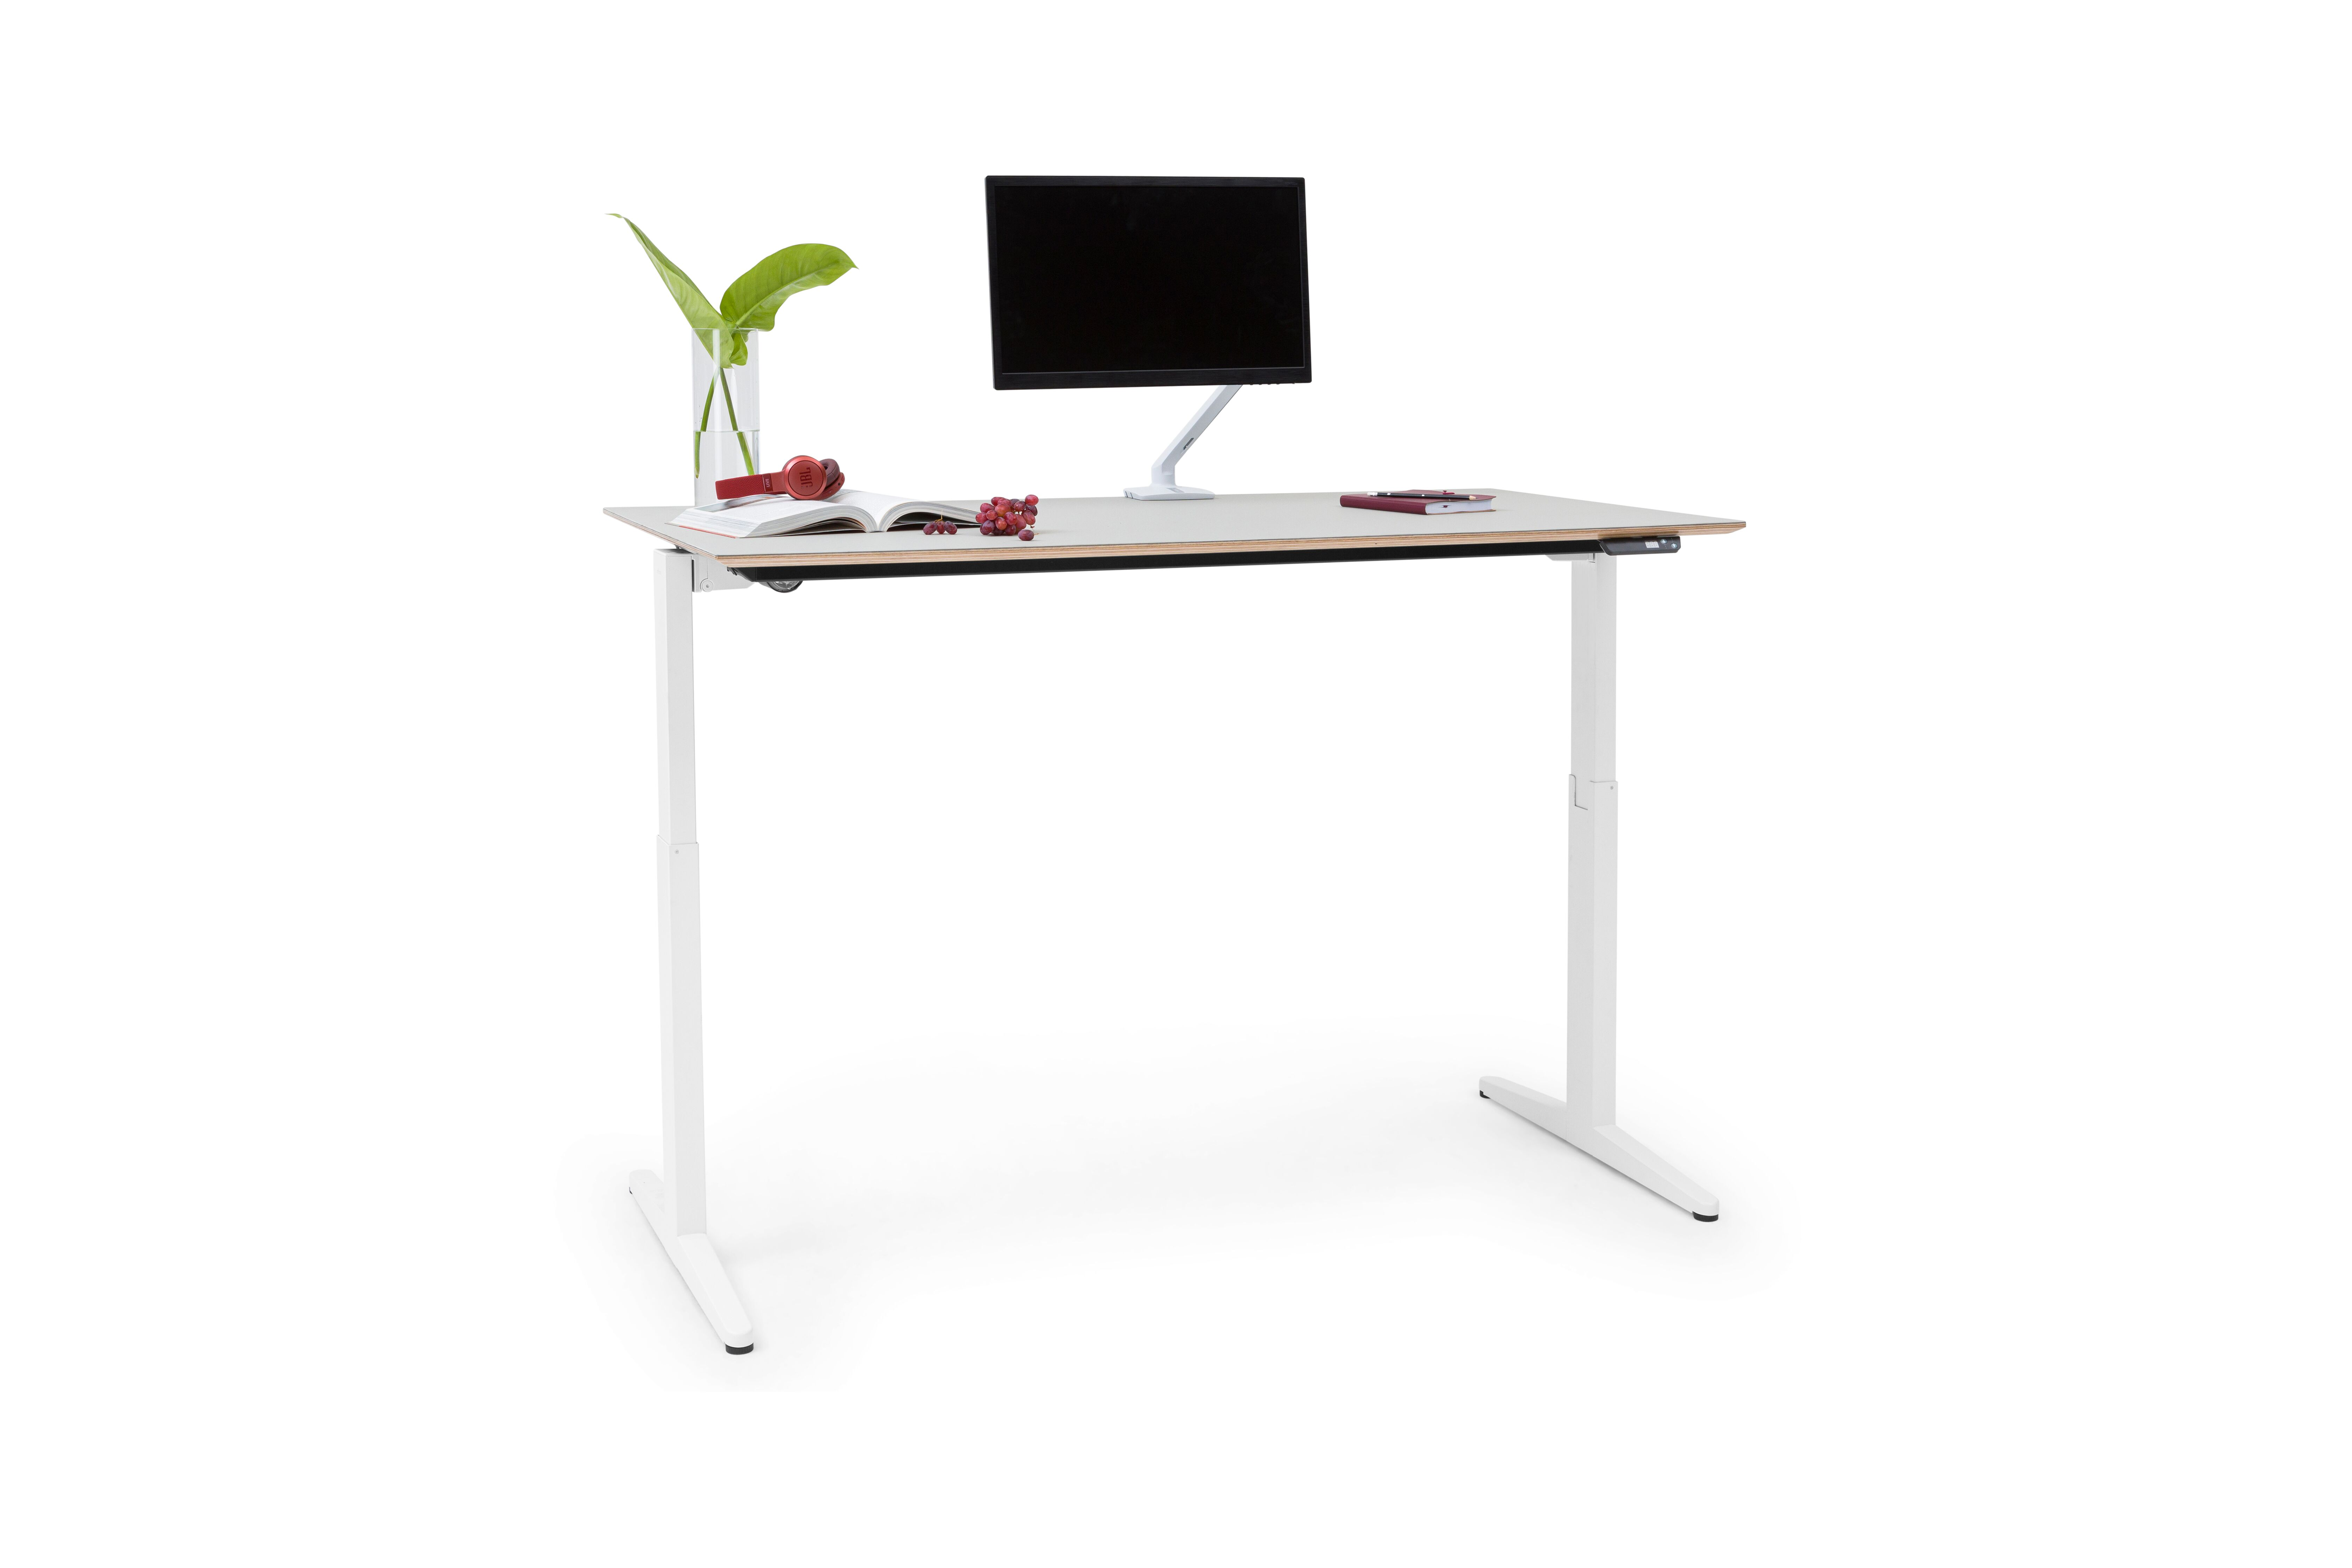 Royal Ahrend Balance folding desk with white frame and grey tabletop in standing position front left view